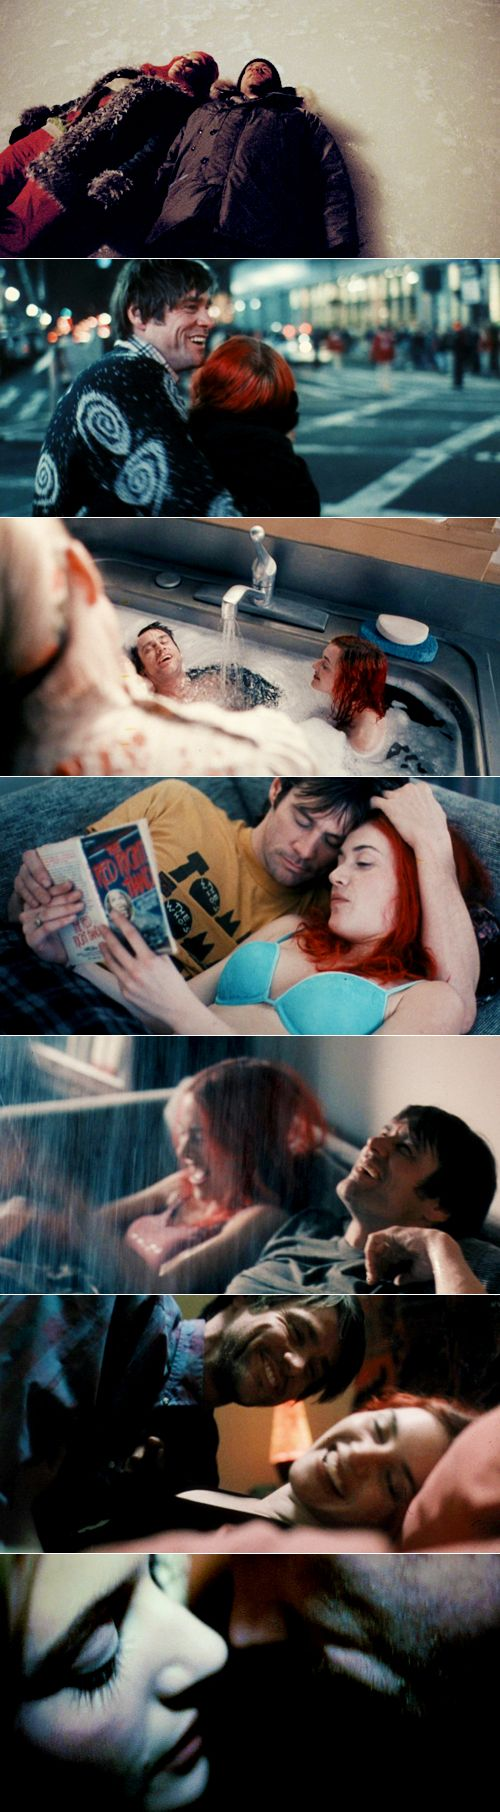 Eternal Sunshine of the Spotless Mind. Jim Carey is underrated as an actor. I love so much about this film from the cast, to the crazy nature of the story.